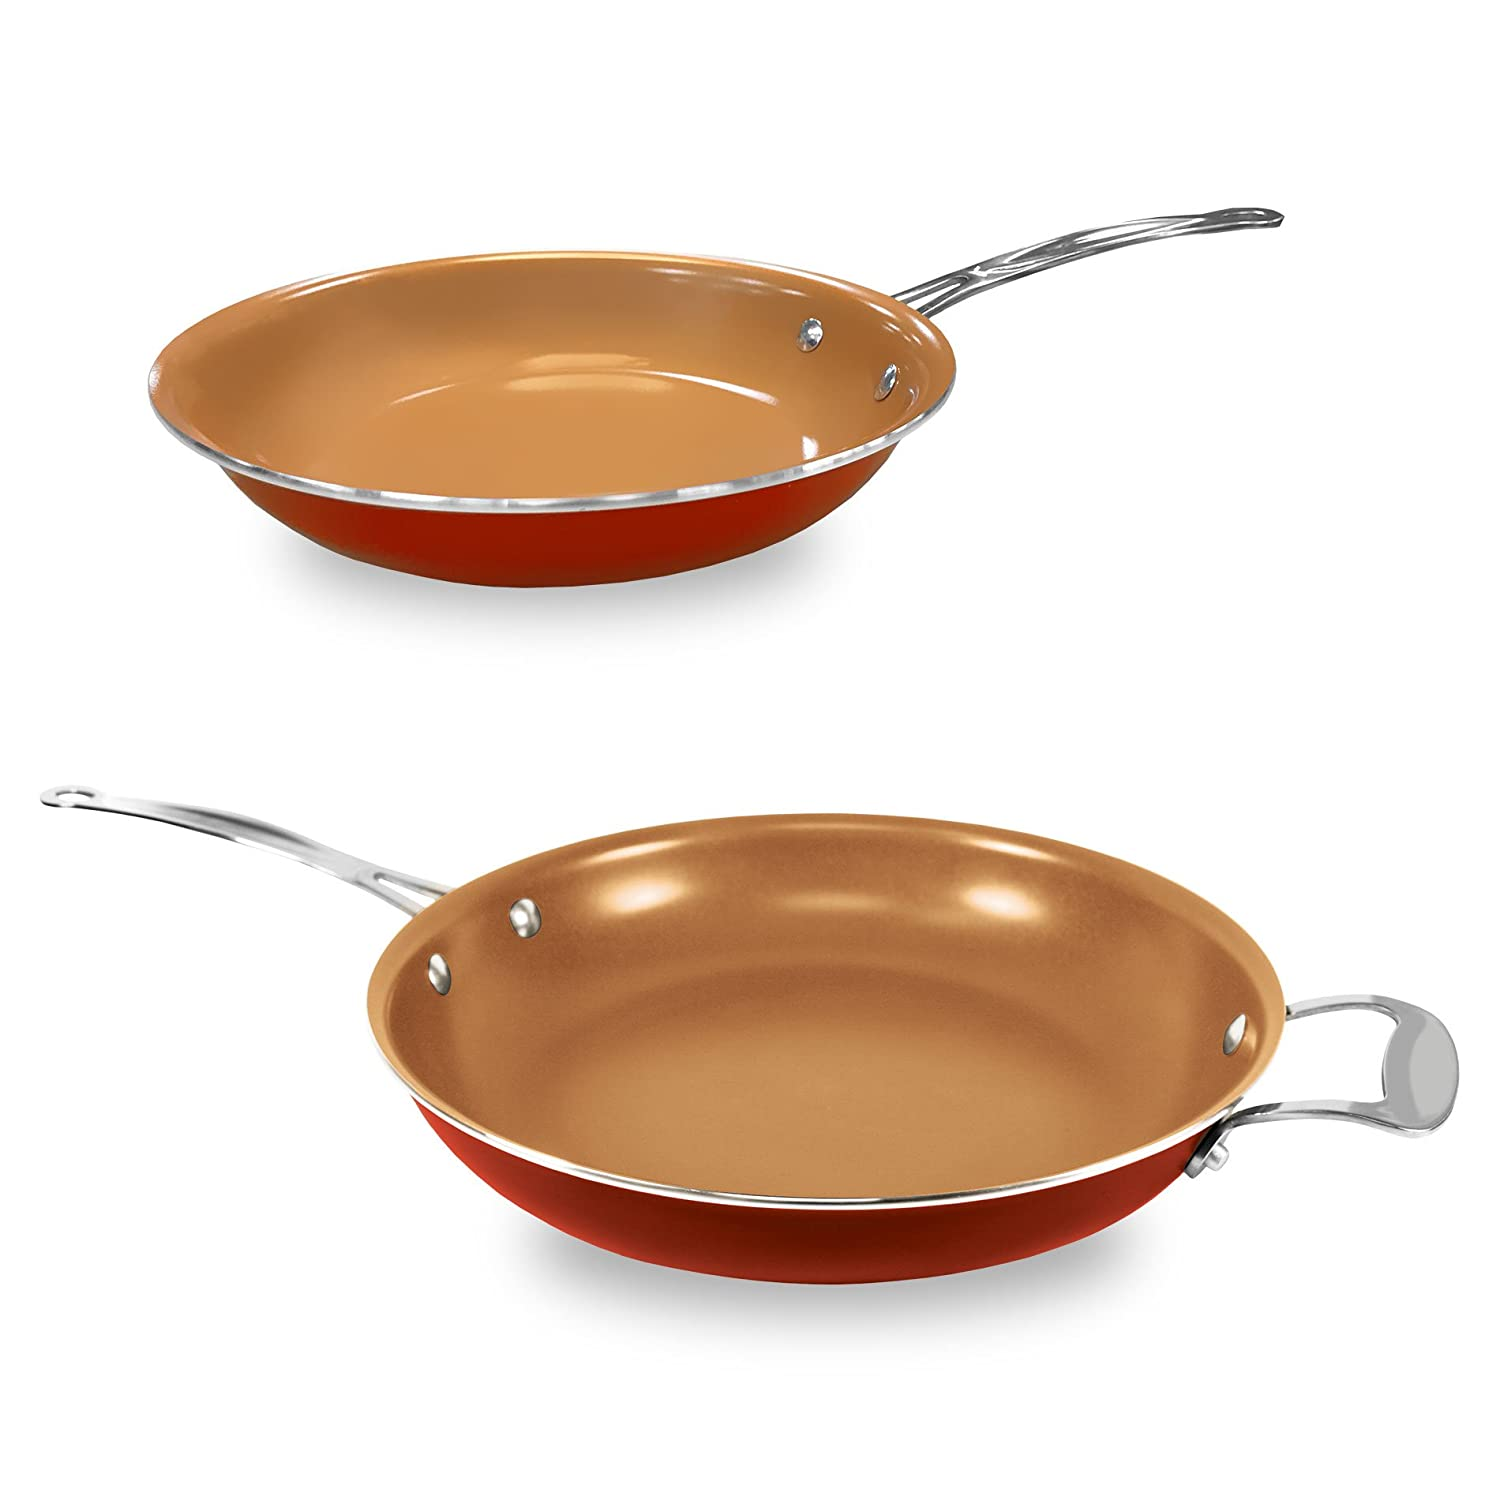 10 In Ceramic Pan With Copper Heat Conductor Updated Red